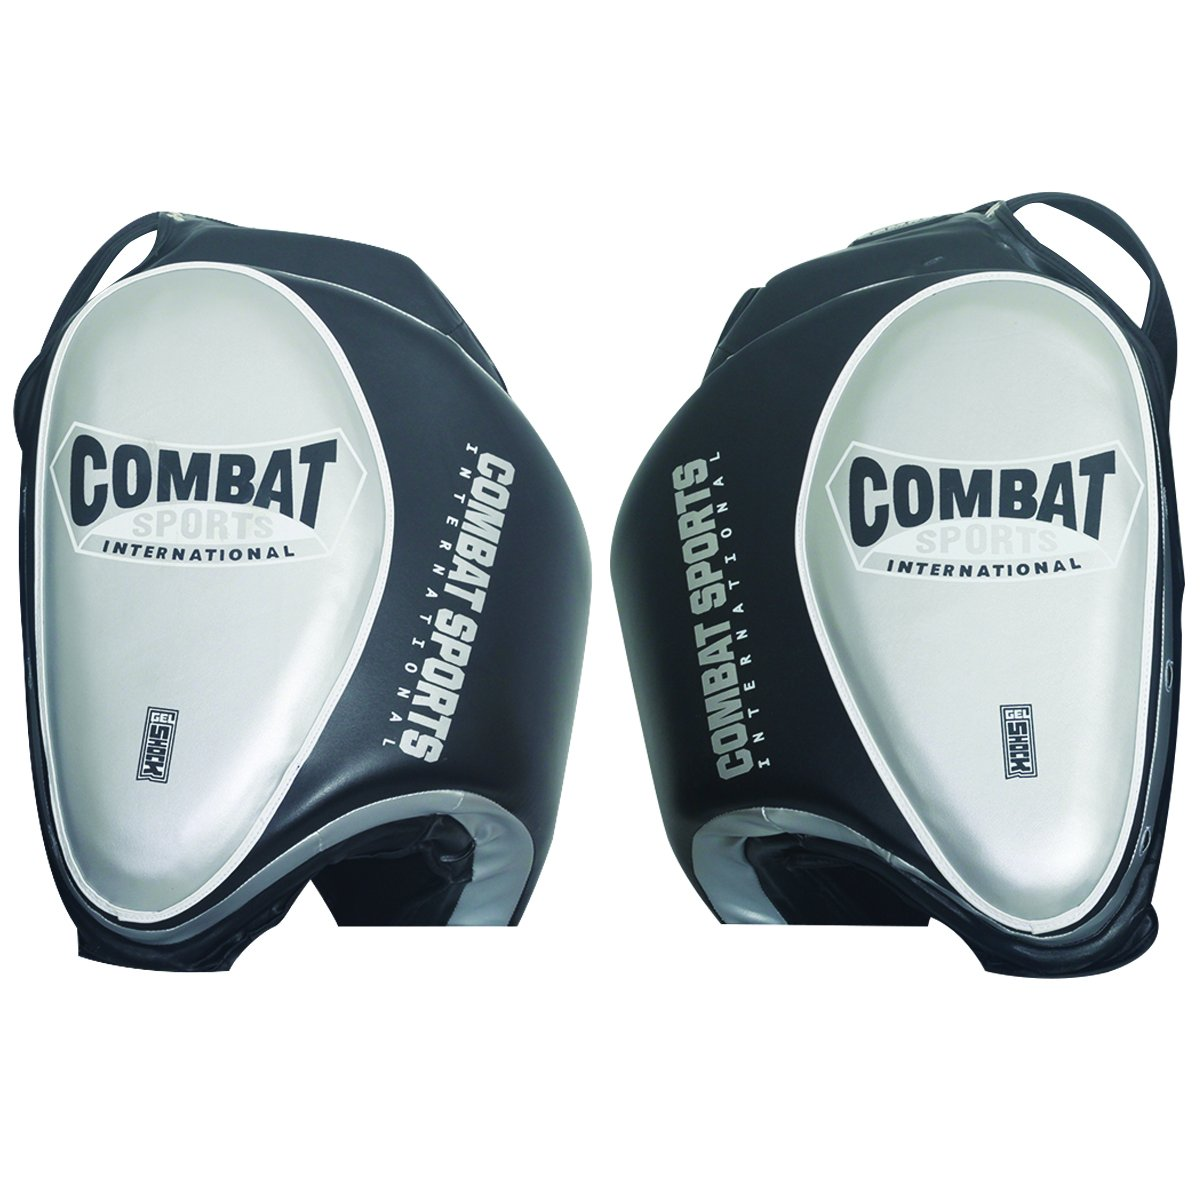 Combat Sports Thigh Guards (Pair), 60cm x 180cm x 1.6cm   B074X172YS